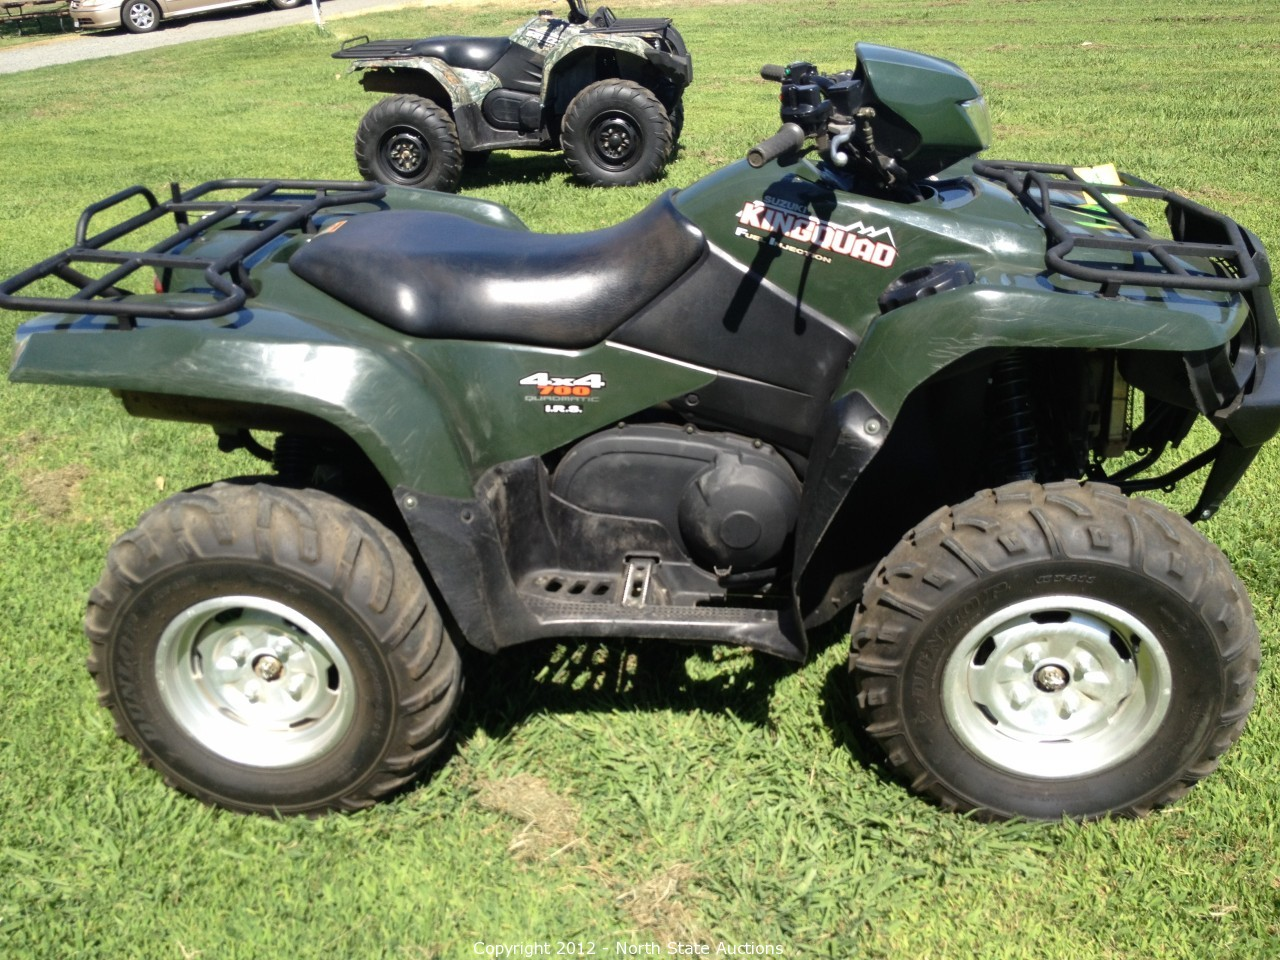 North State Auctions - Auction: Consignment Auction of ATVs, UTVs,  Motorcycles, and Trailers. ITEM: 2005 Suzuki King Quad 700 4X4 Fuel  Injected.